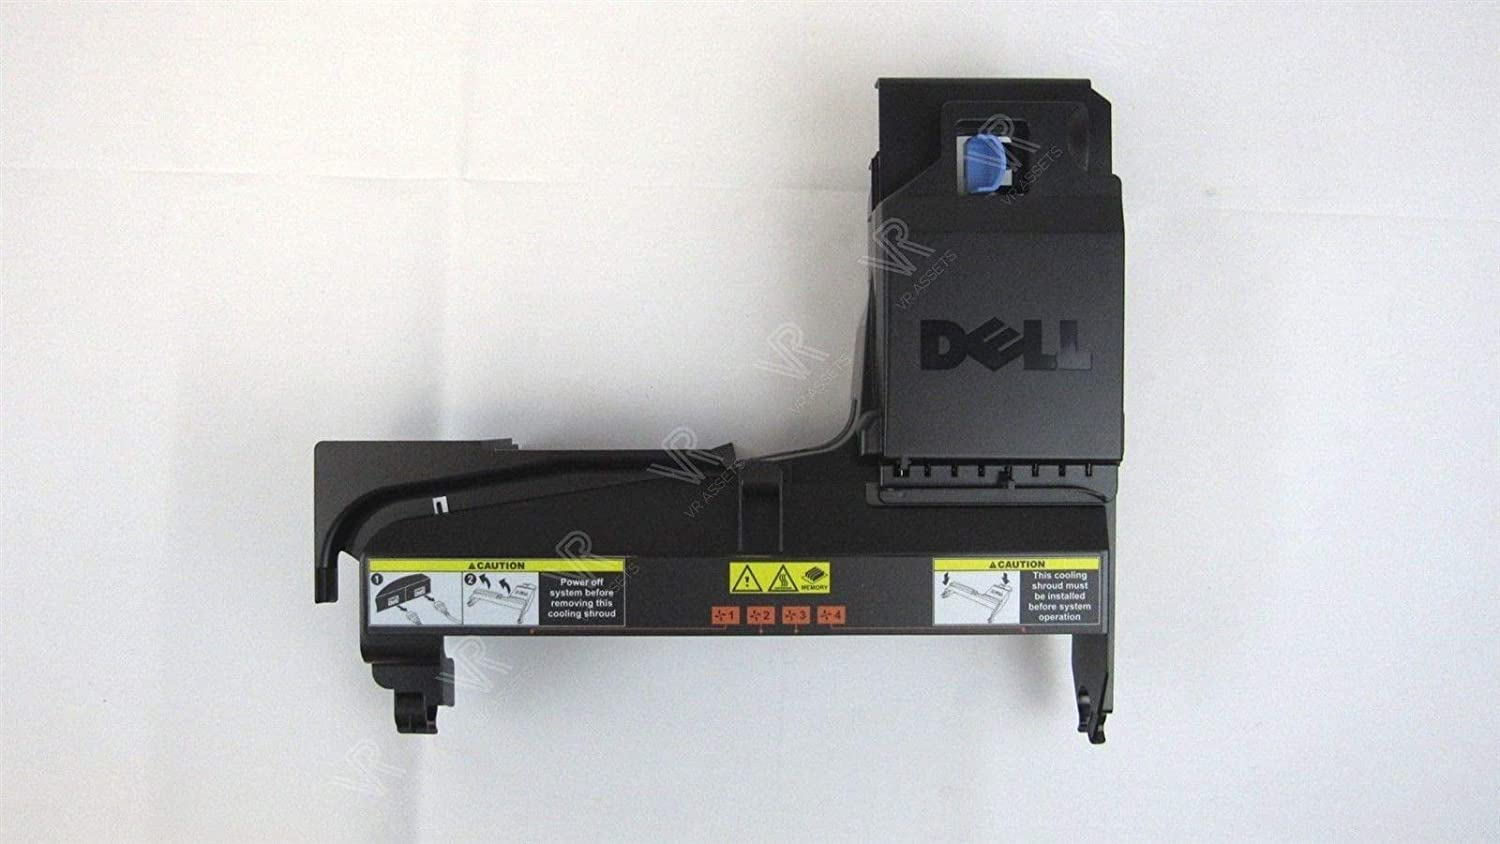 Dell PE 2950 Fan Shroud Plastic CC510 Bulk TC012